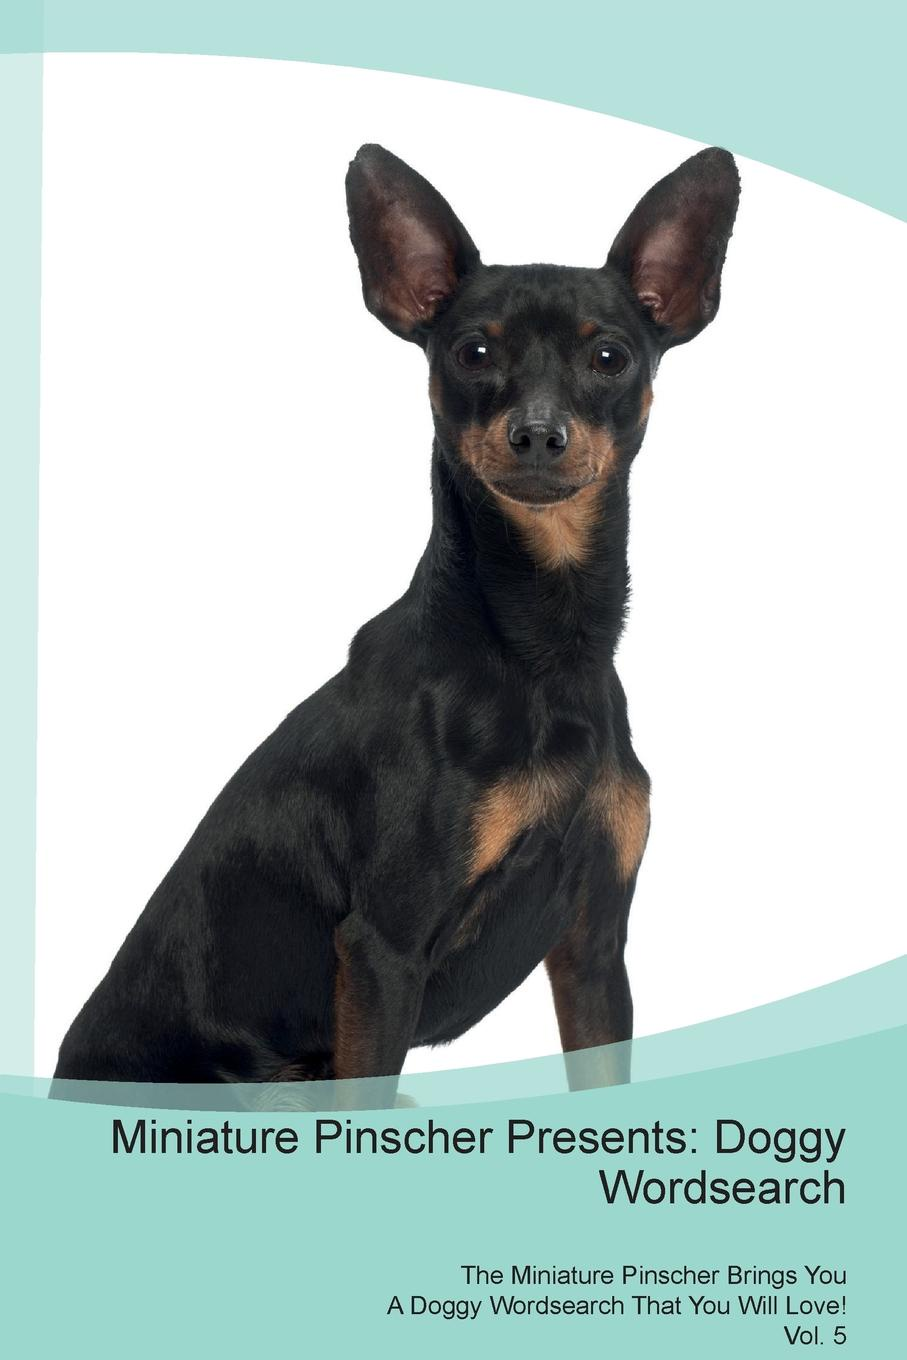 Doggy Puzzles Miniature Pinscher Presents. Wordsearch The Brings You A That Will Love! Vol. 5